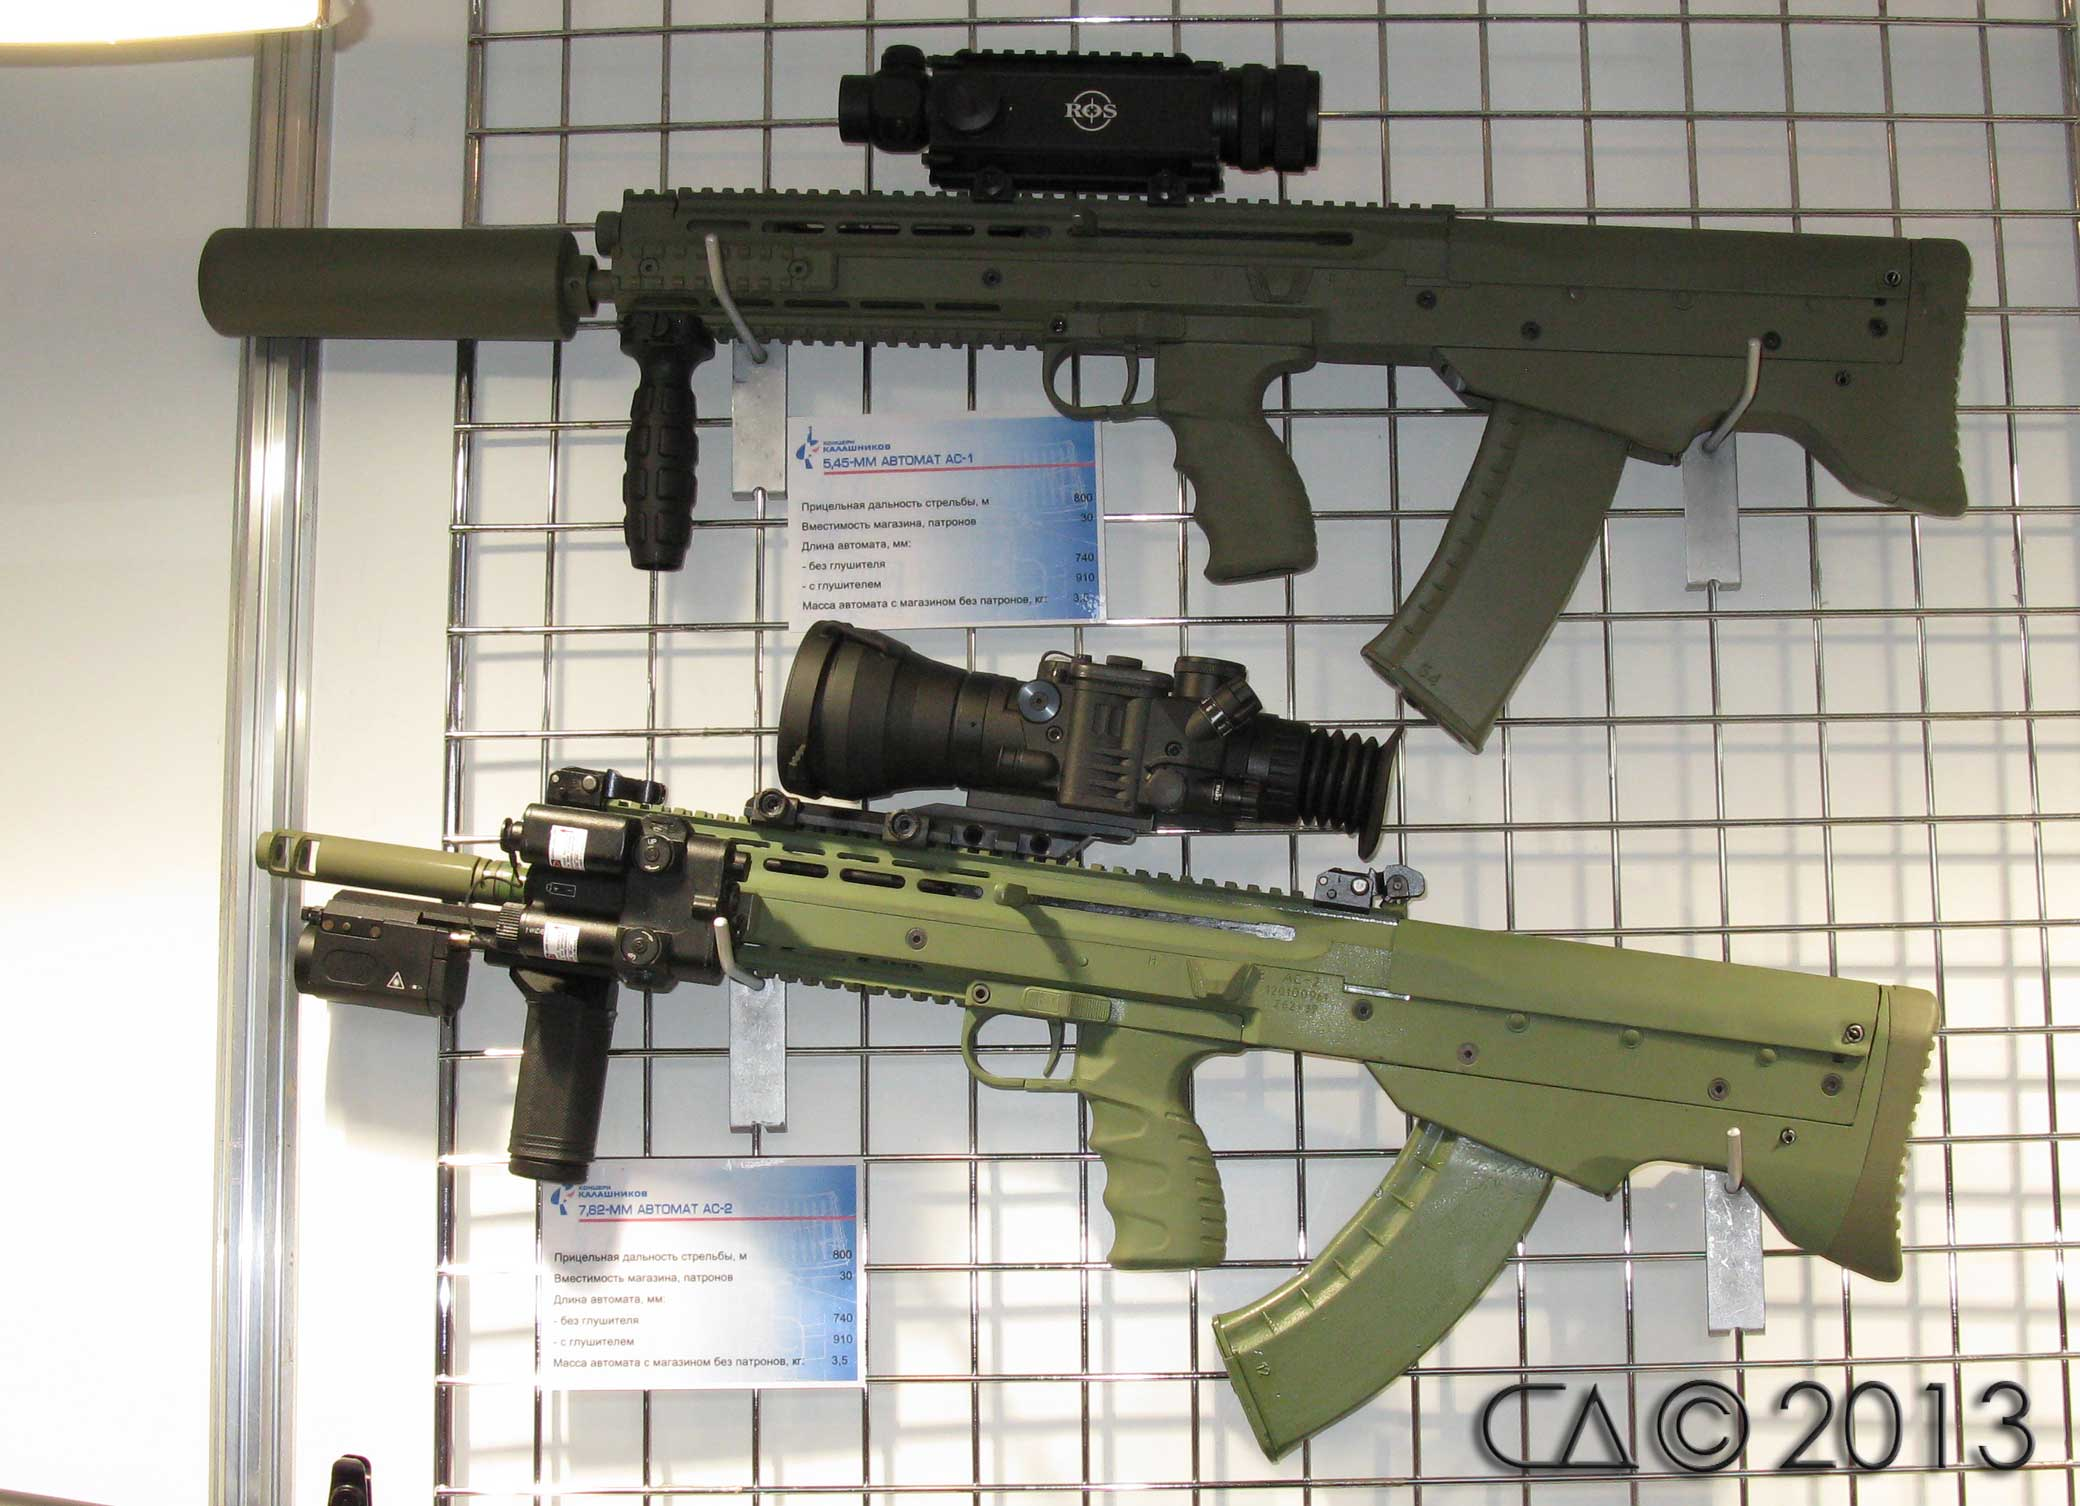 Russian Assault Rifles & Machine Guns Thread: #1 - Page 23 JOde1